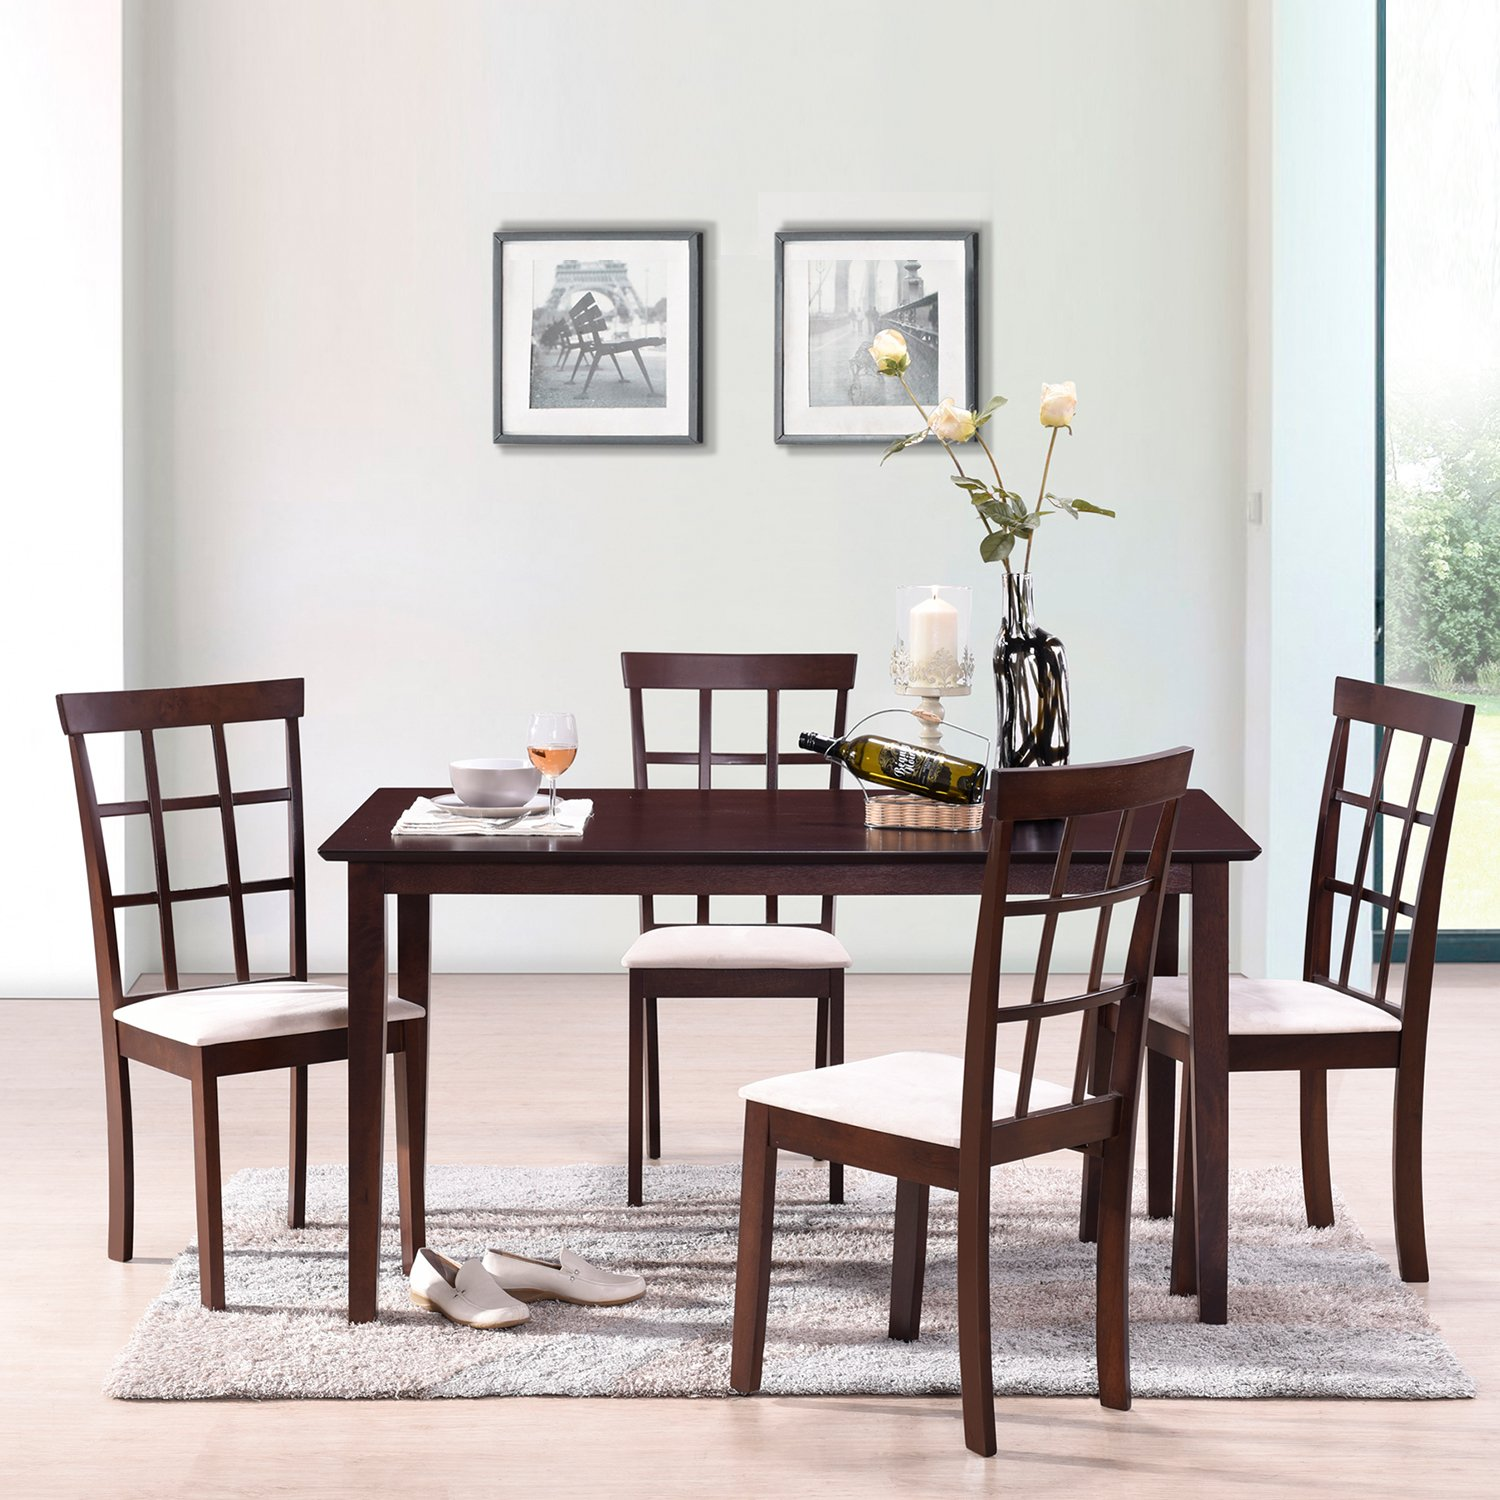 official photos ed130 6d8e1 Top 5 Best Wood Dining Tables in 2019 Review